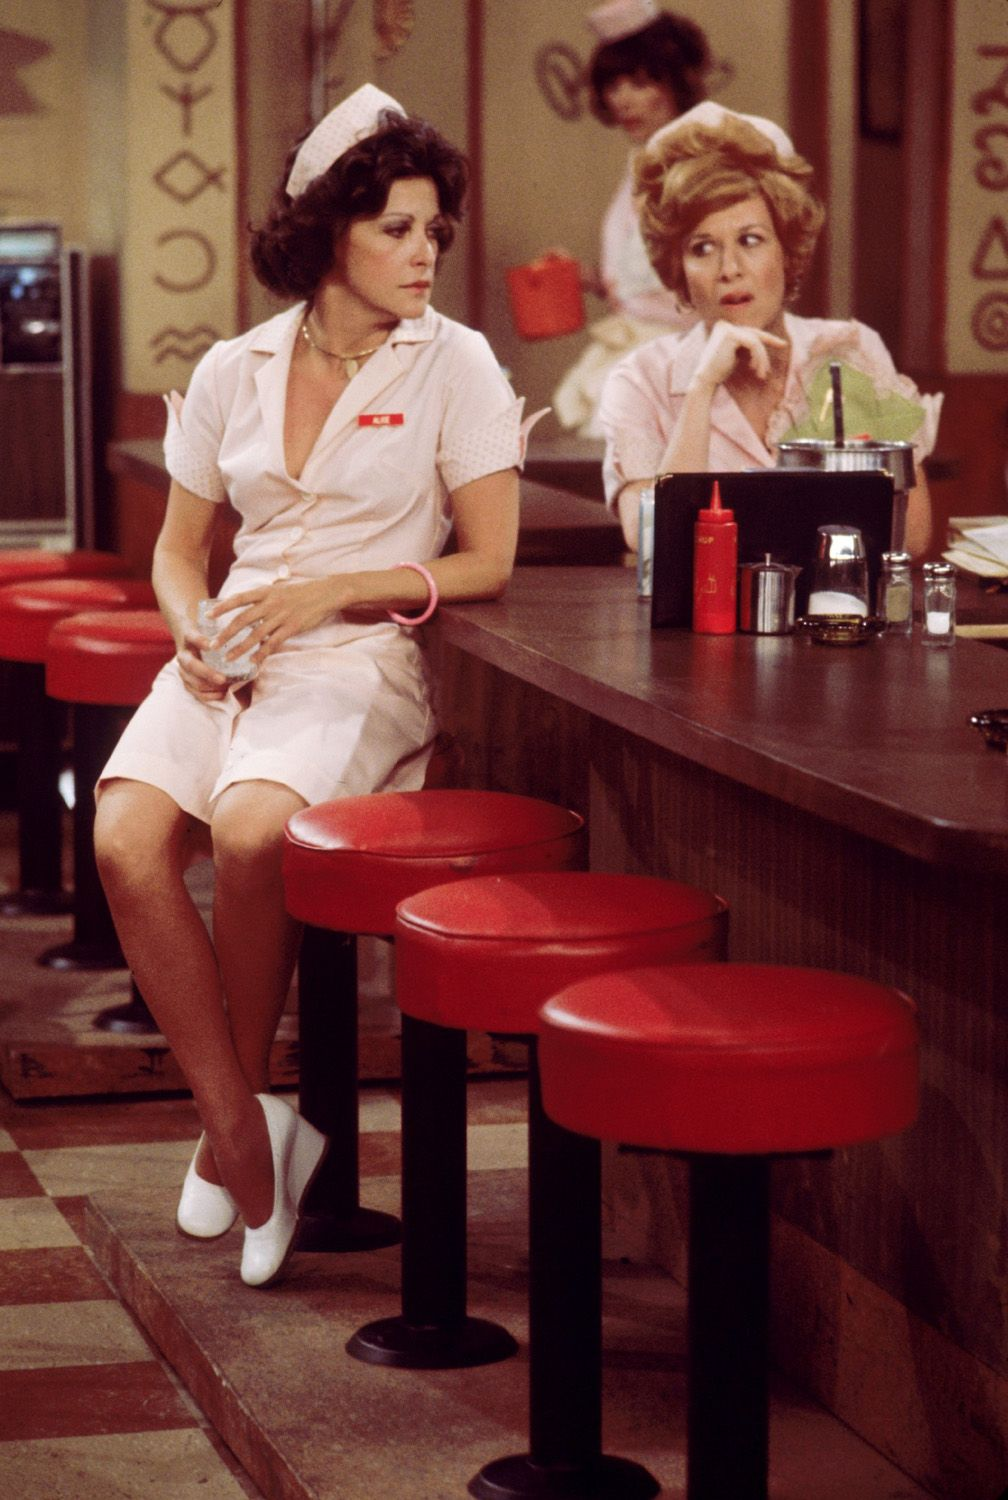 Alice And Flo At Mels Diner Tv Shows Pinterest Pin Marlin Model 60 Parts Diagram Image Search Results On